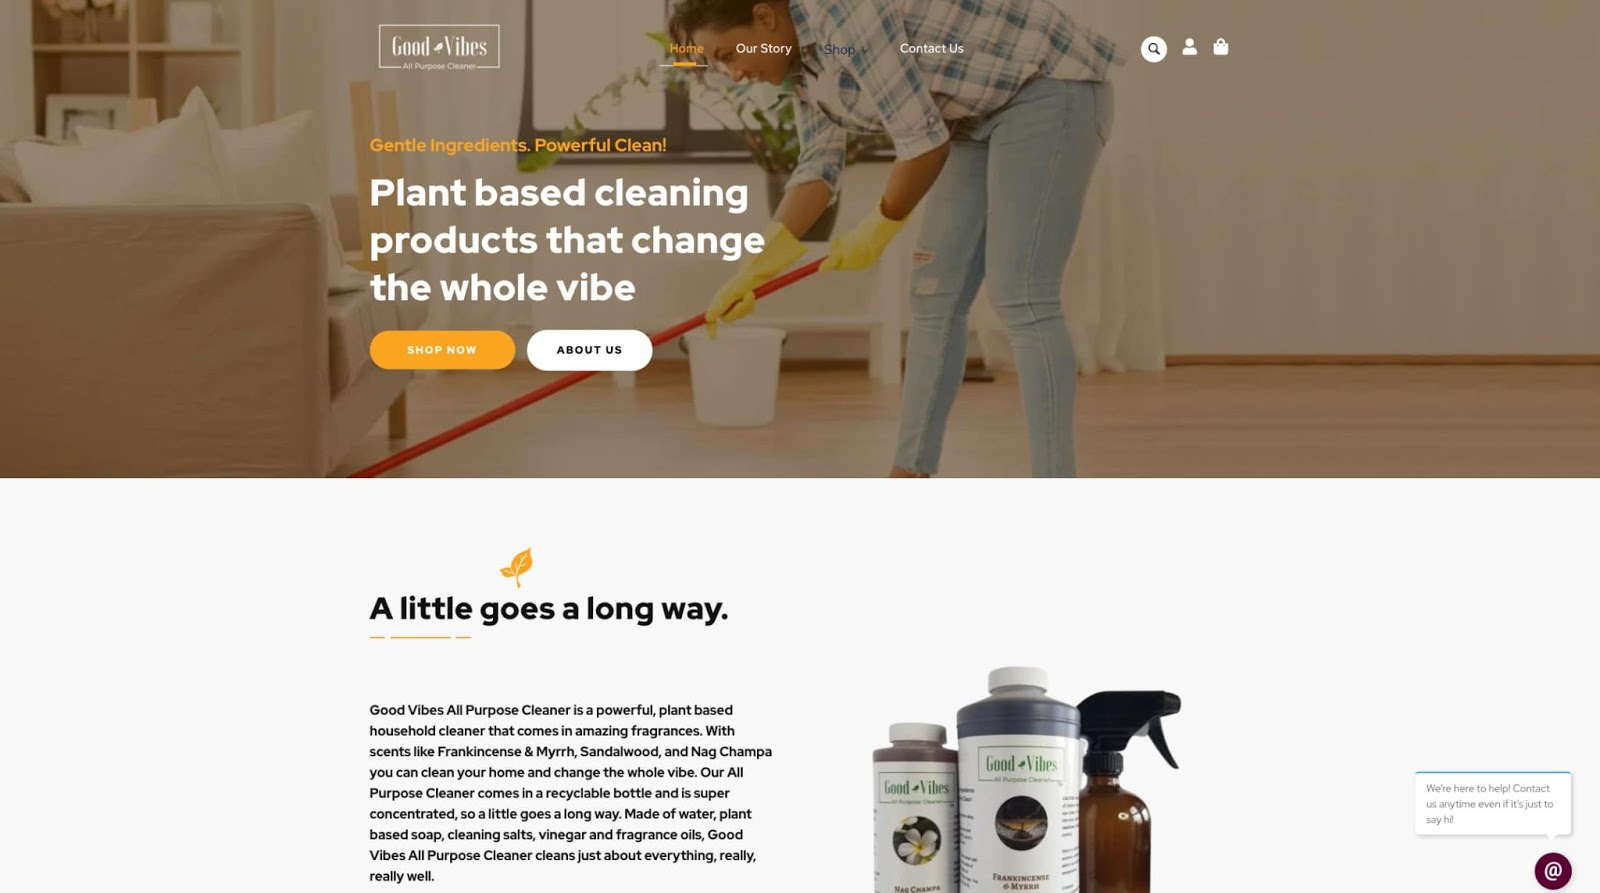 homepage for the small business website design example good vibes all purpose cleaner